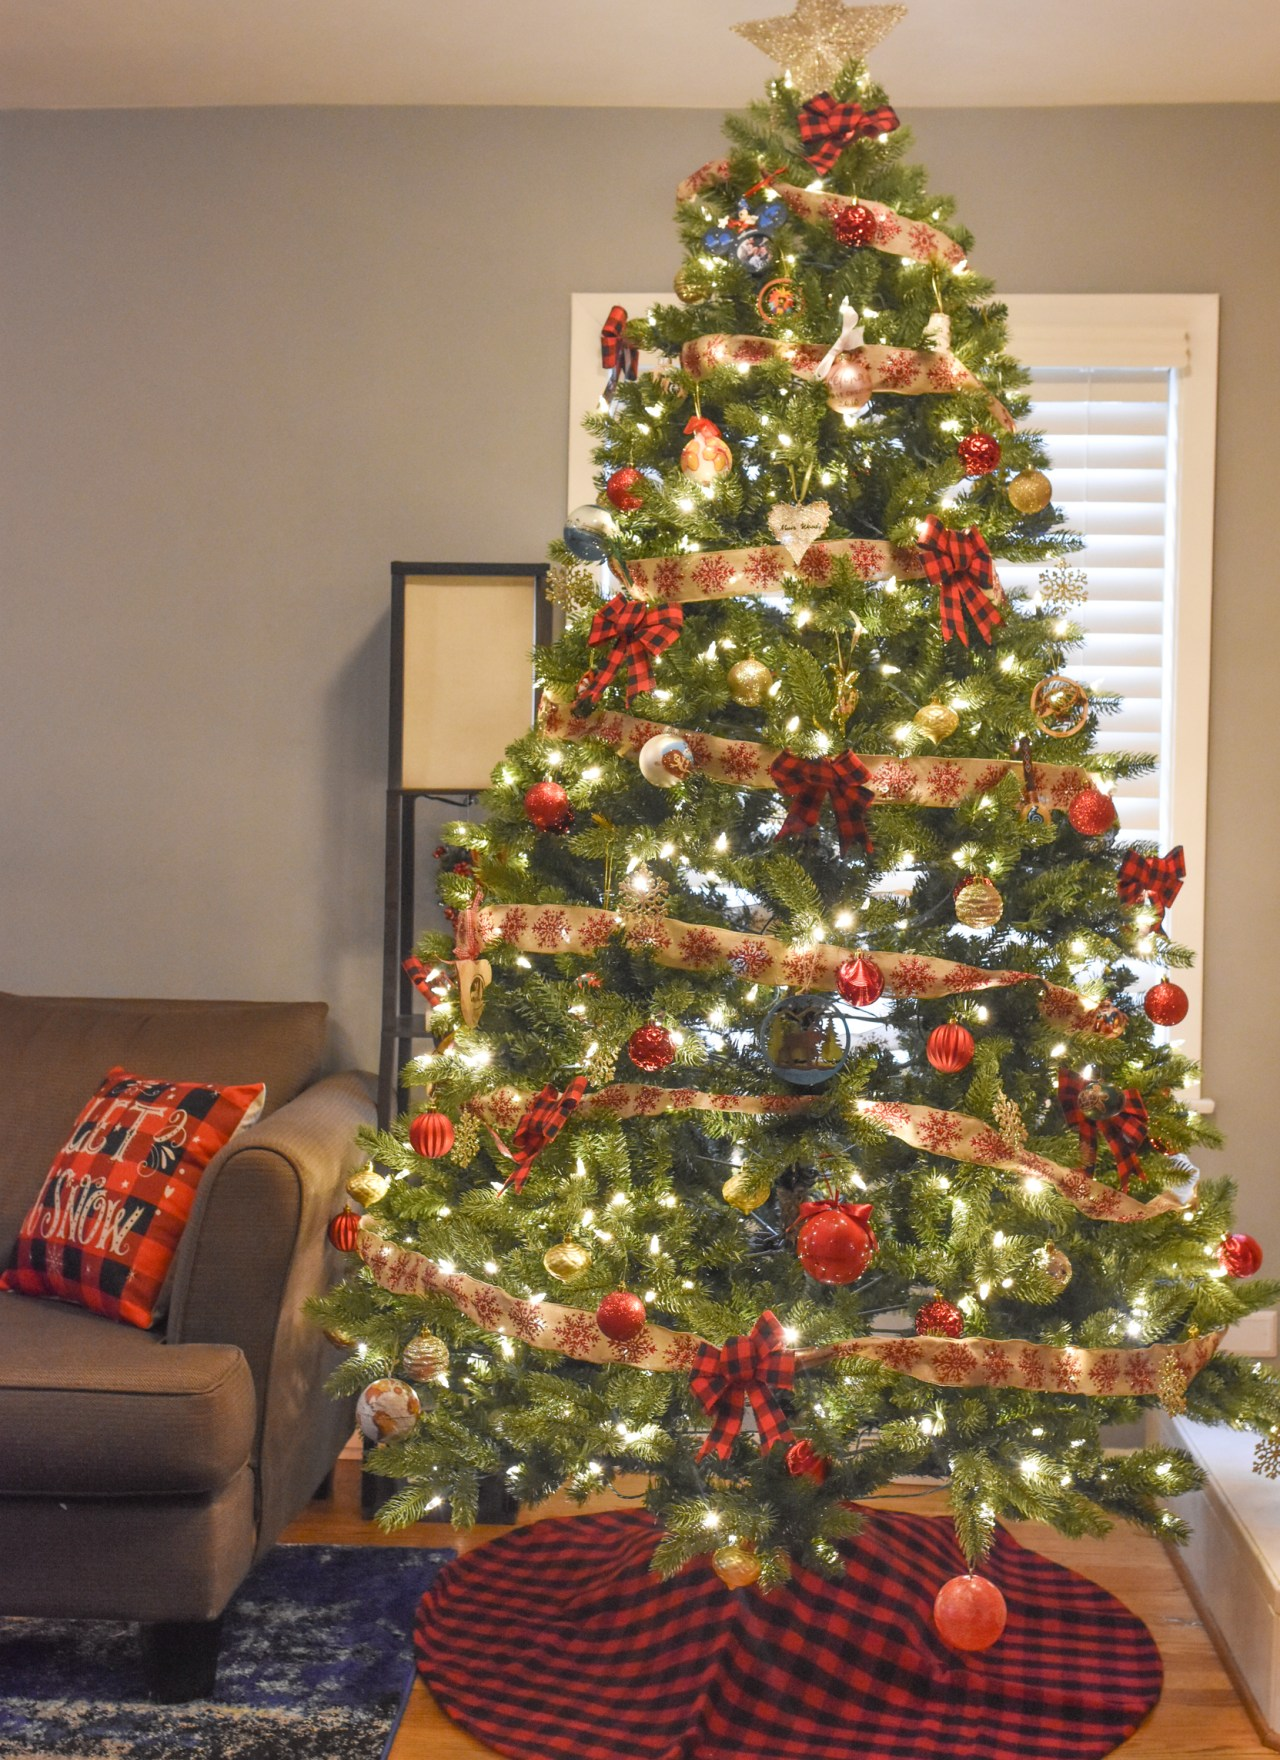 Affordable Christmas Decor Home Tour 2019